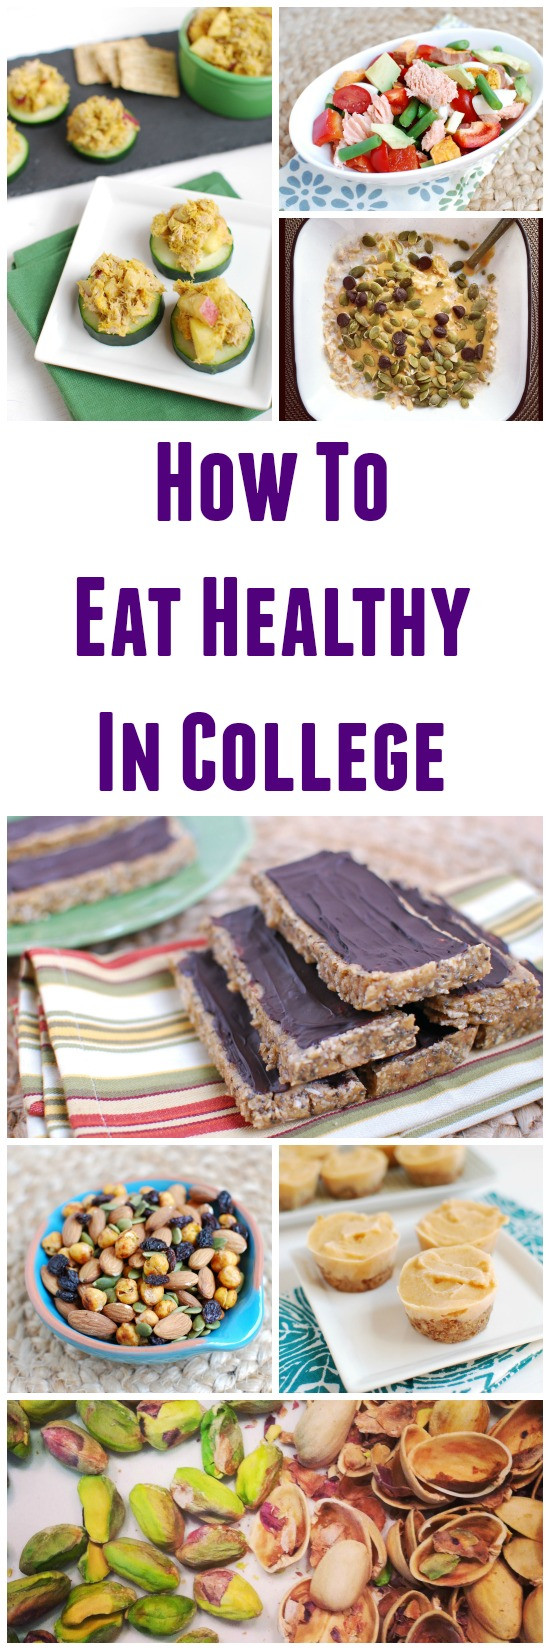 Healthy Snacks For College Dorms  How to Eat Healthy in College